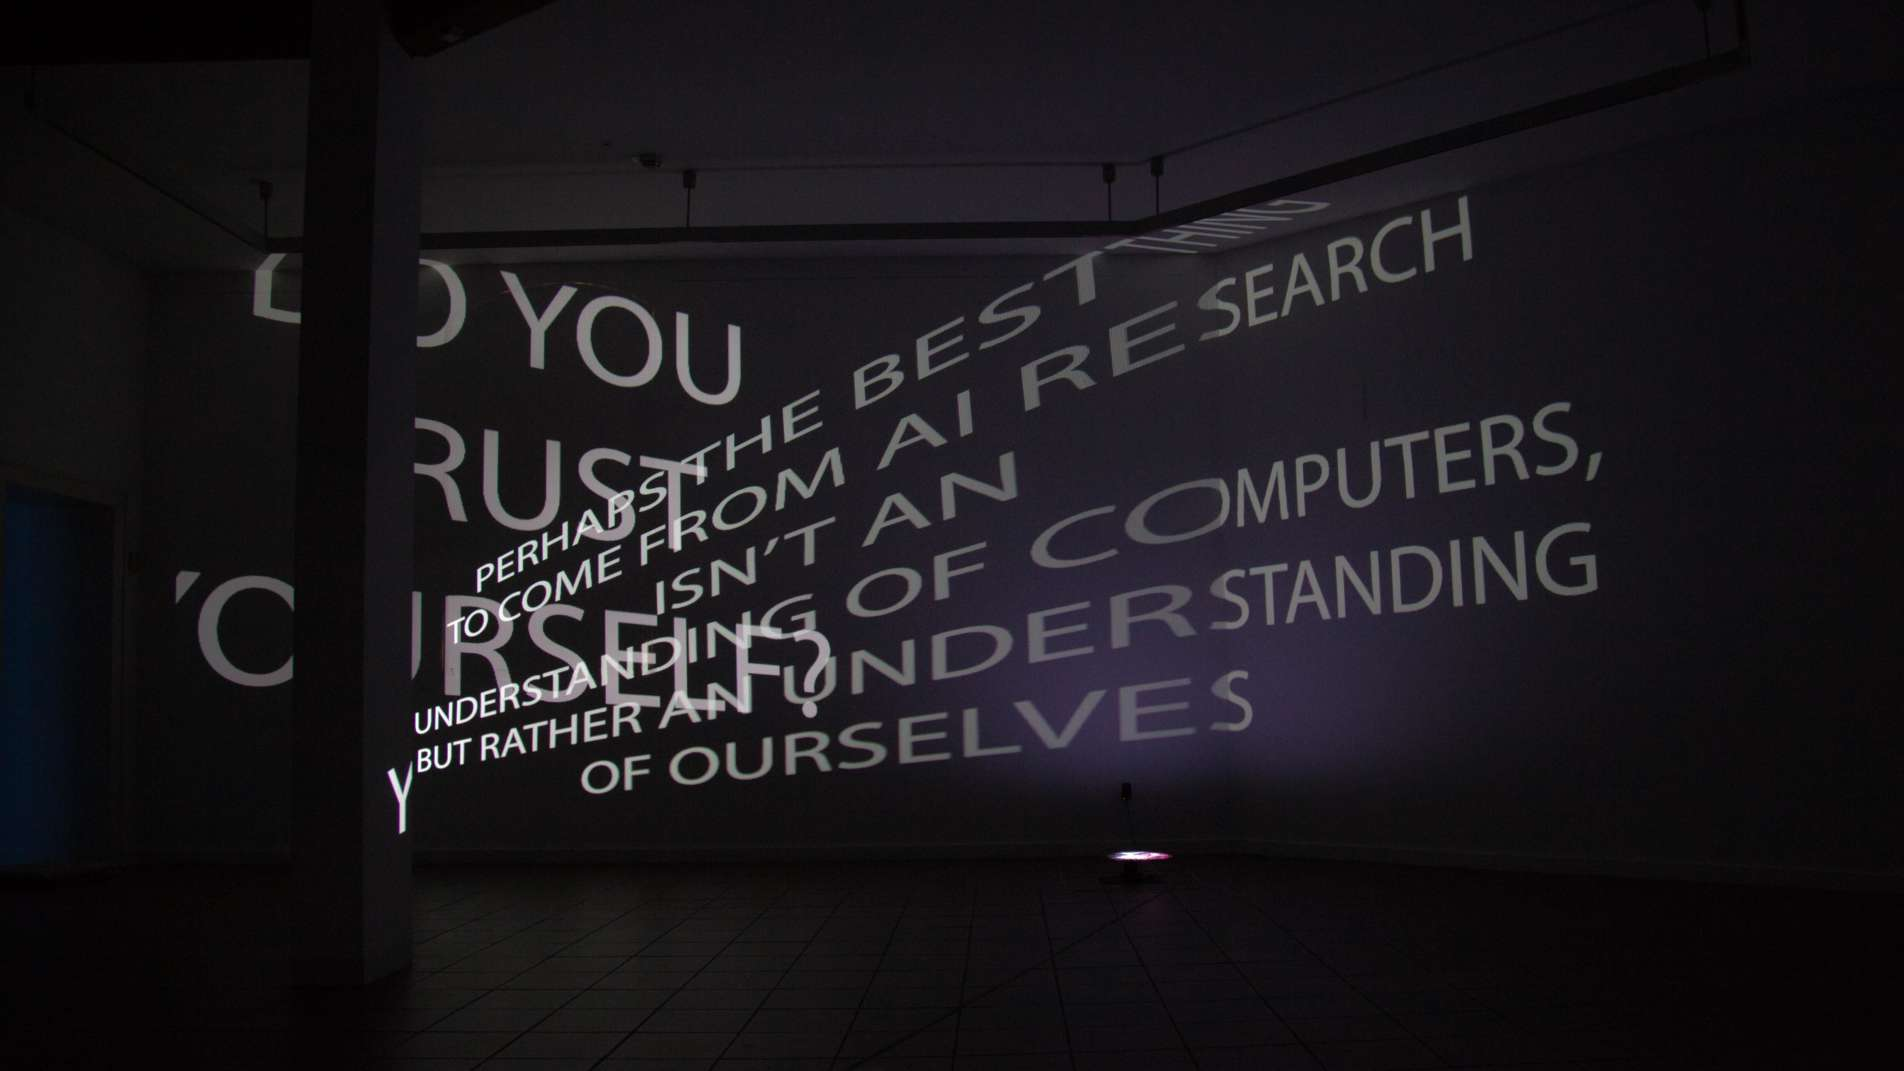 Two sentences in English are projected into a room in a dark environment